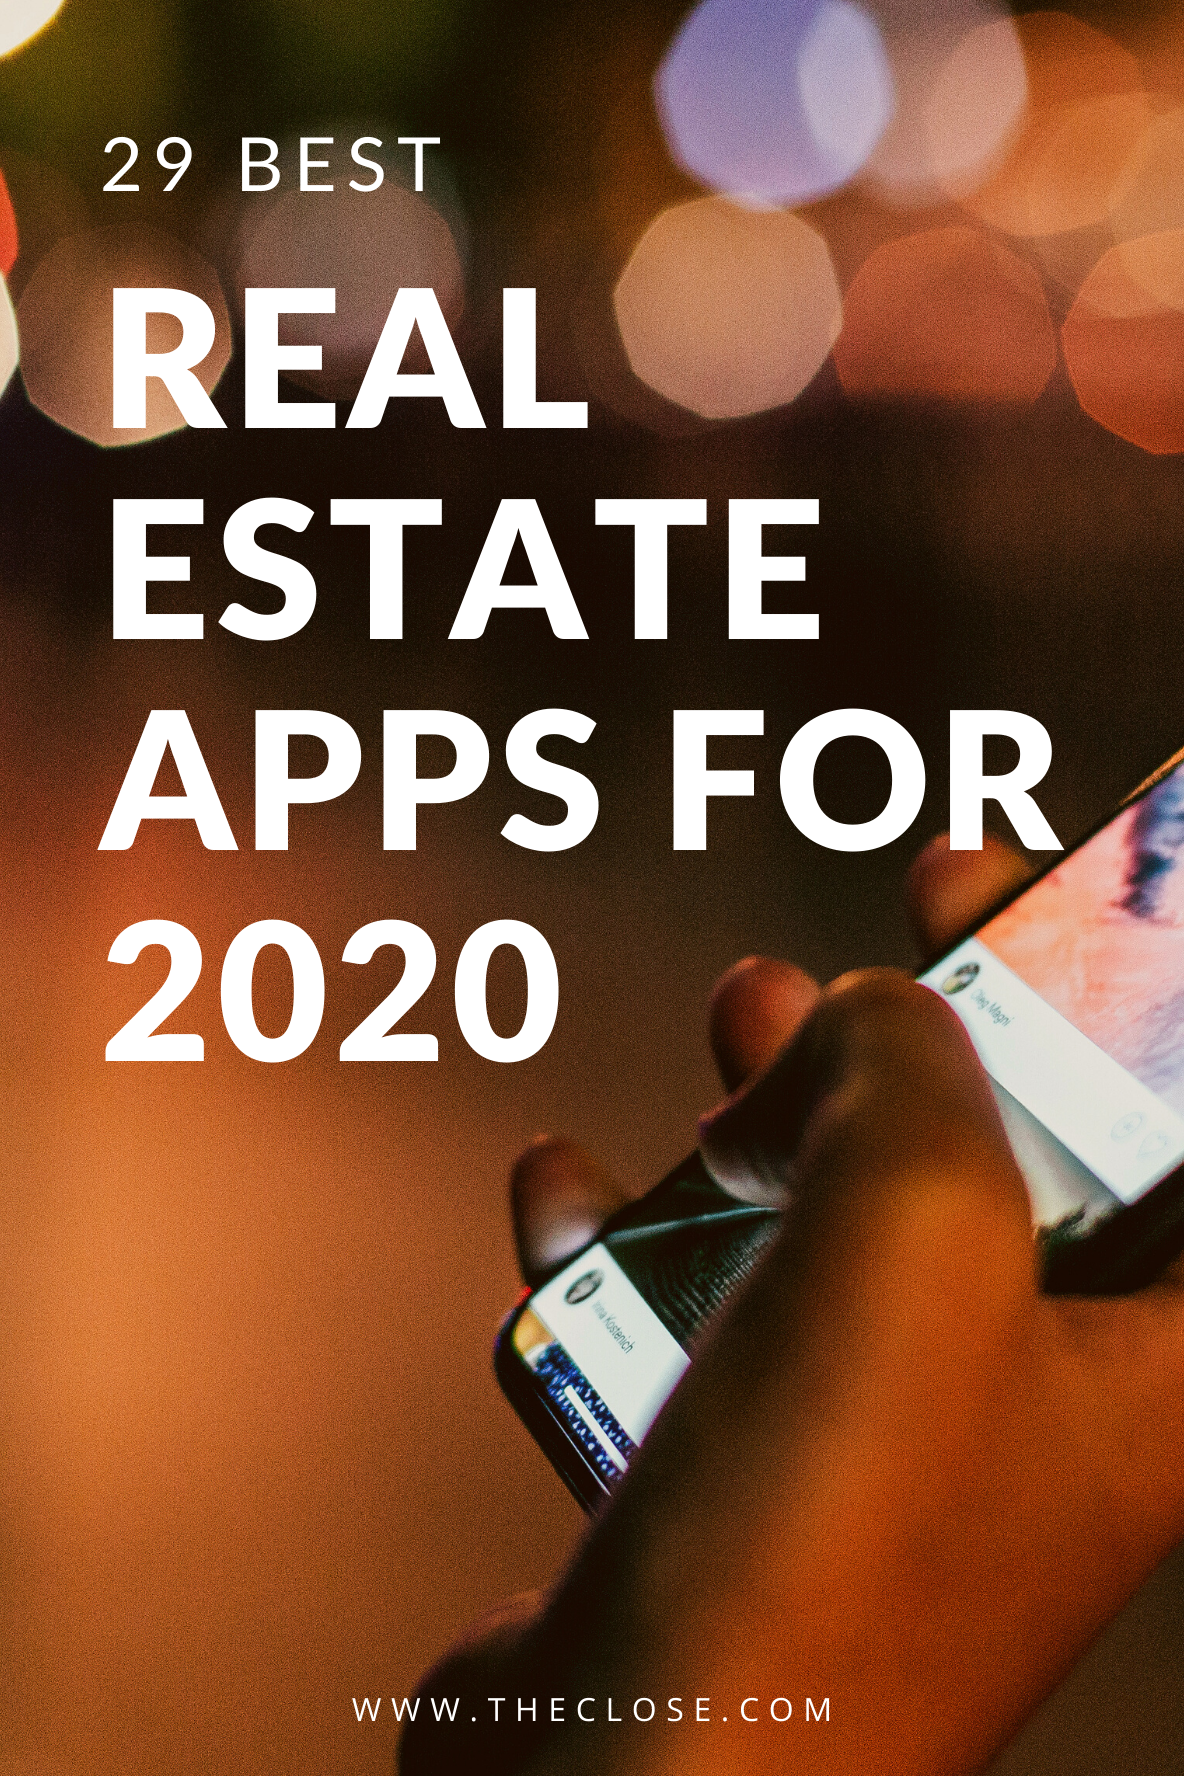 29 Best Real Estate Apps